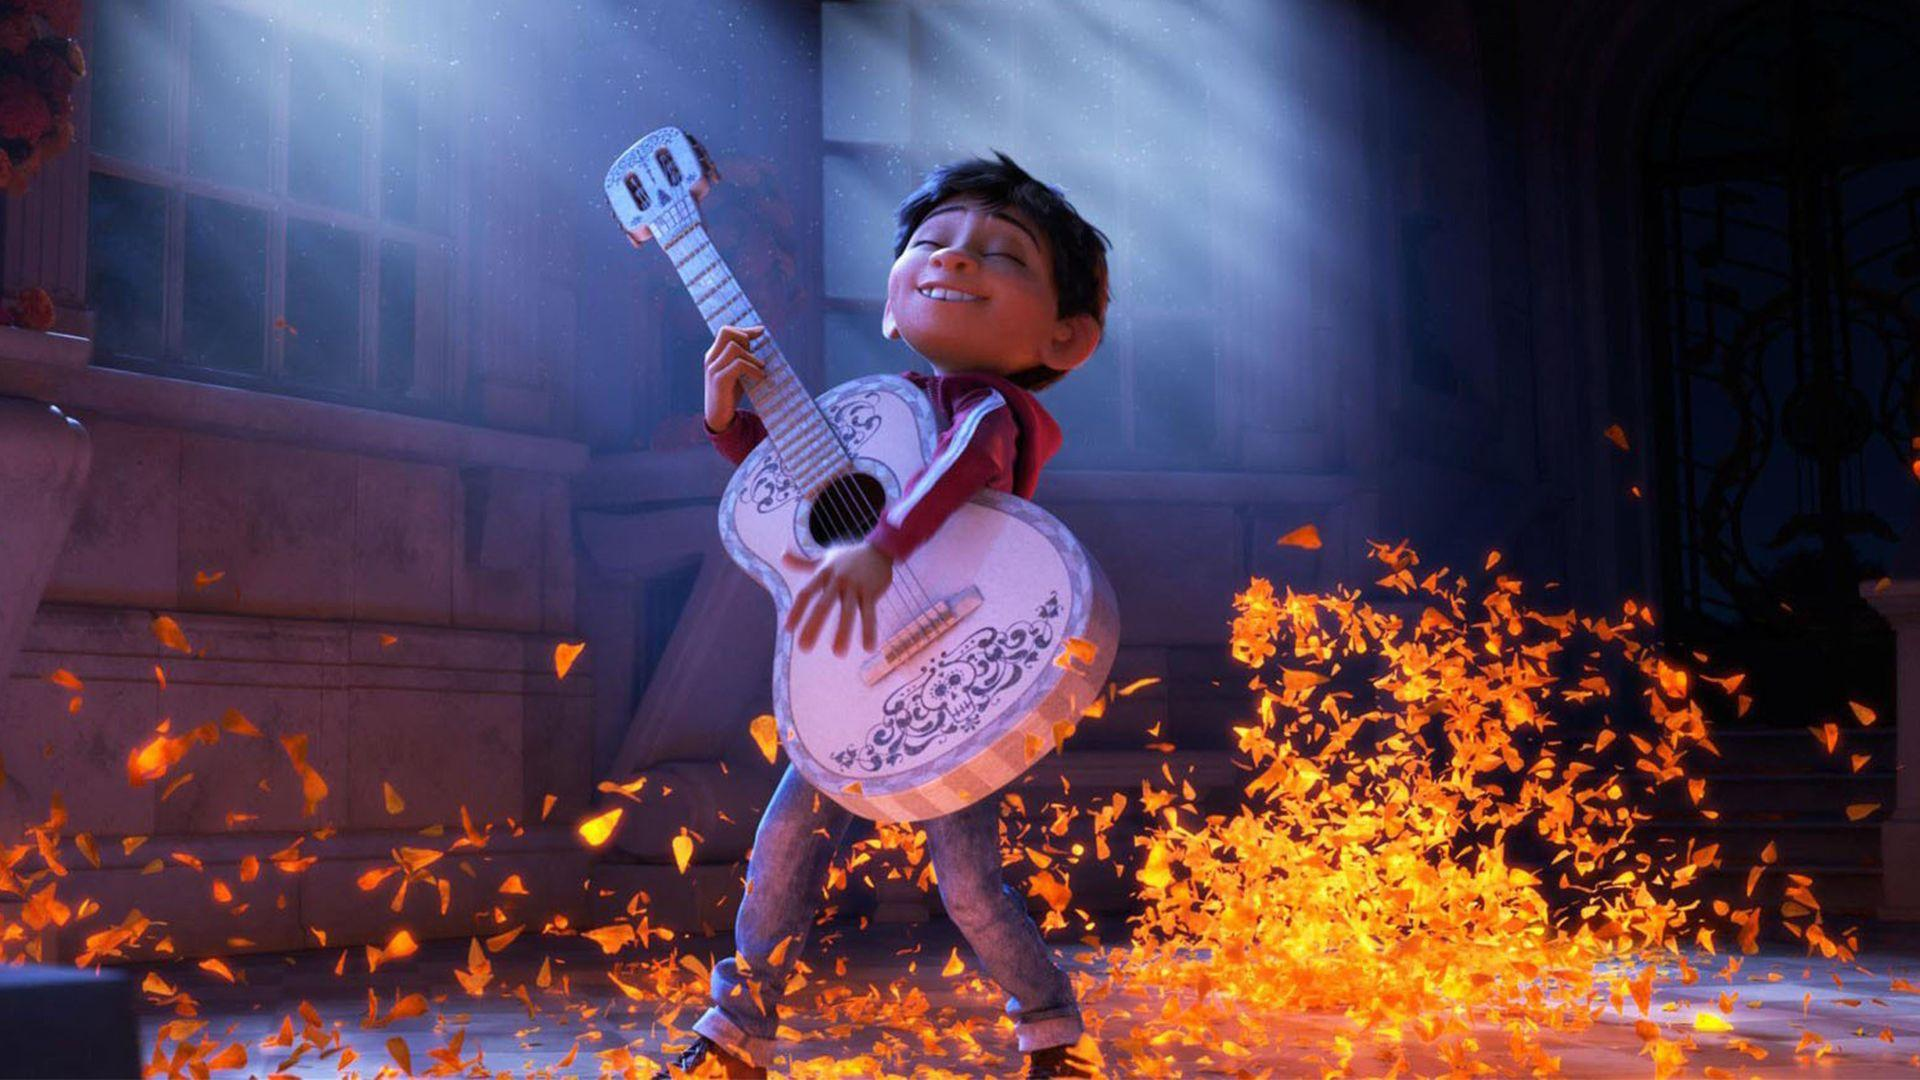 Pixar's Coco Takes Us To The Land Of The Dead In Stunning First